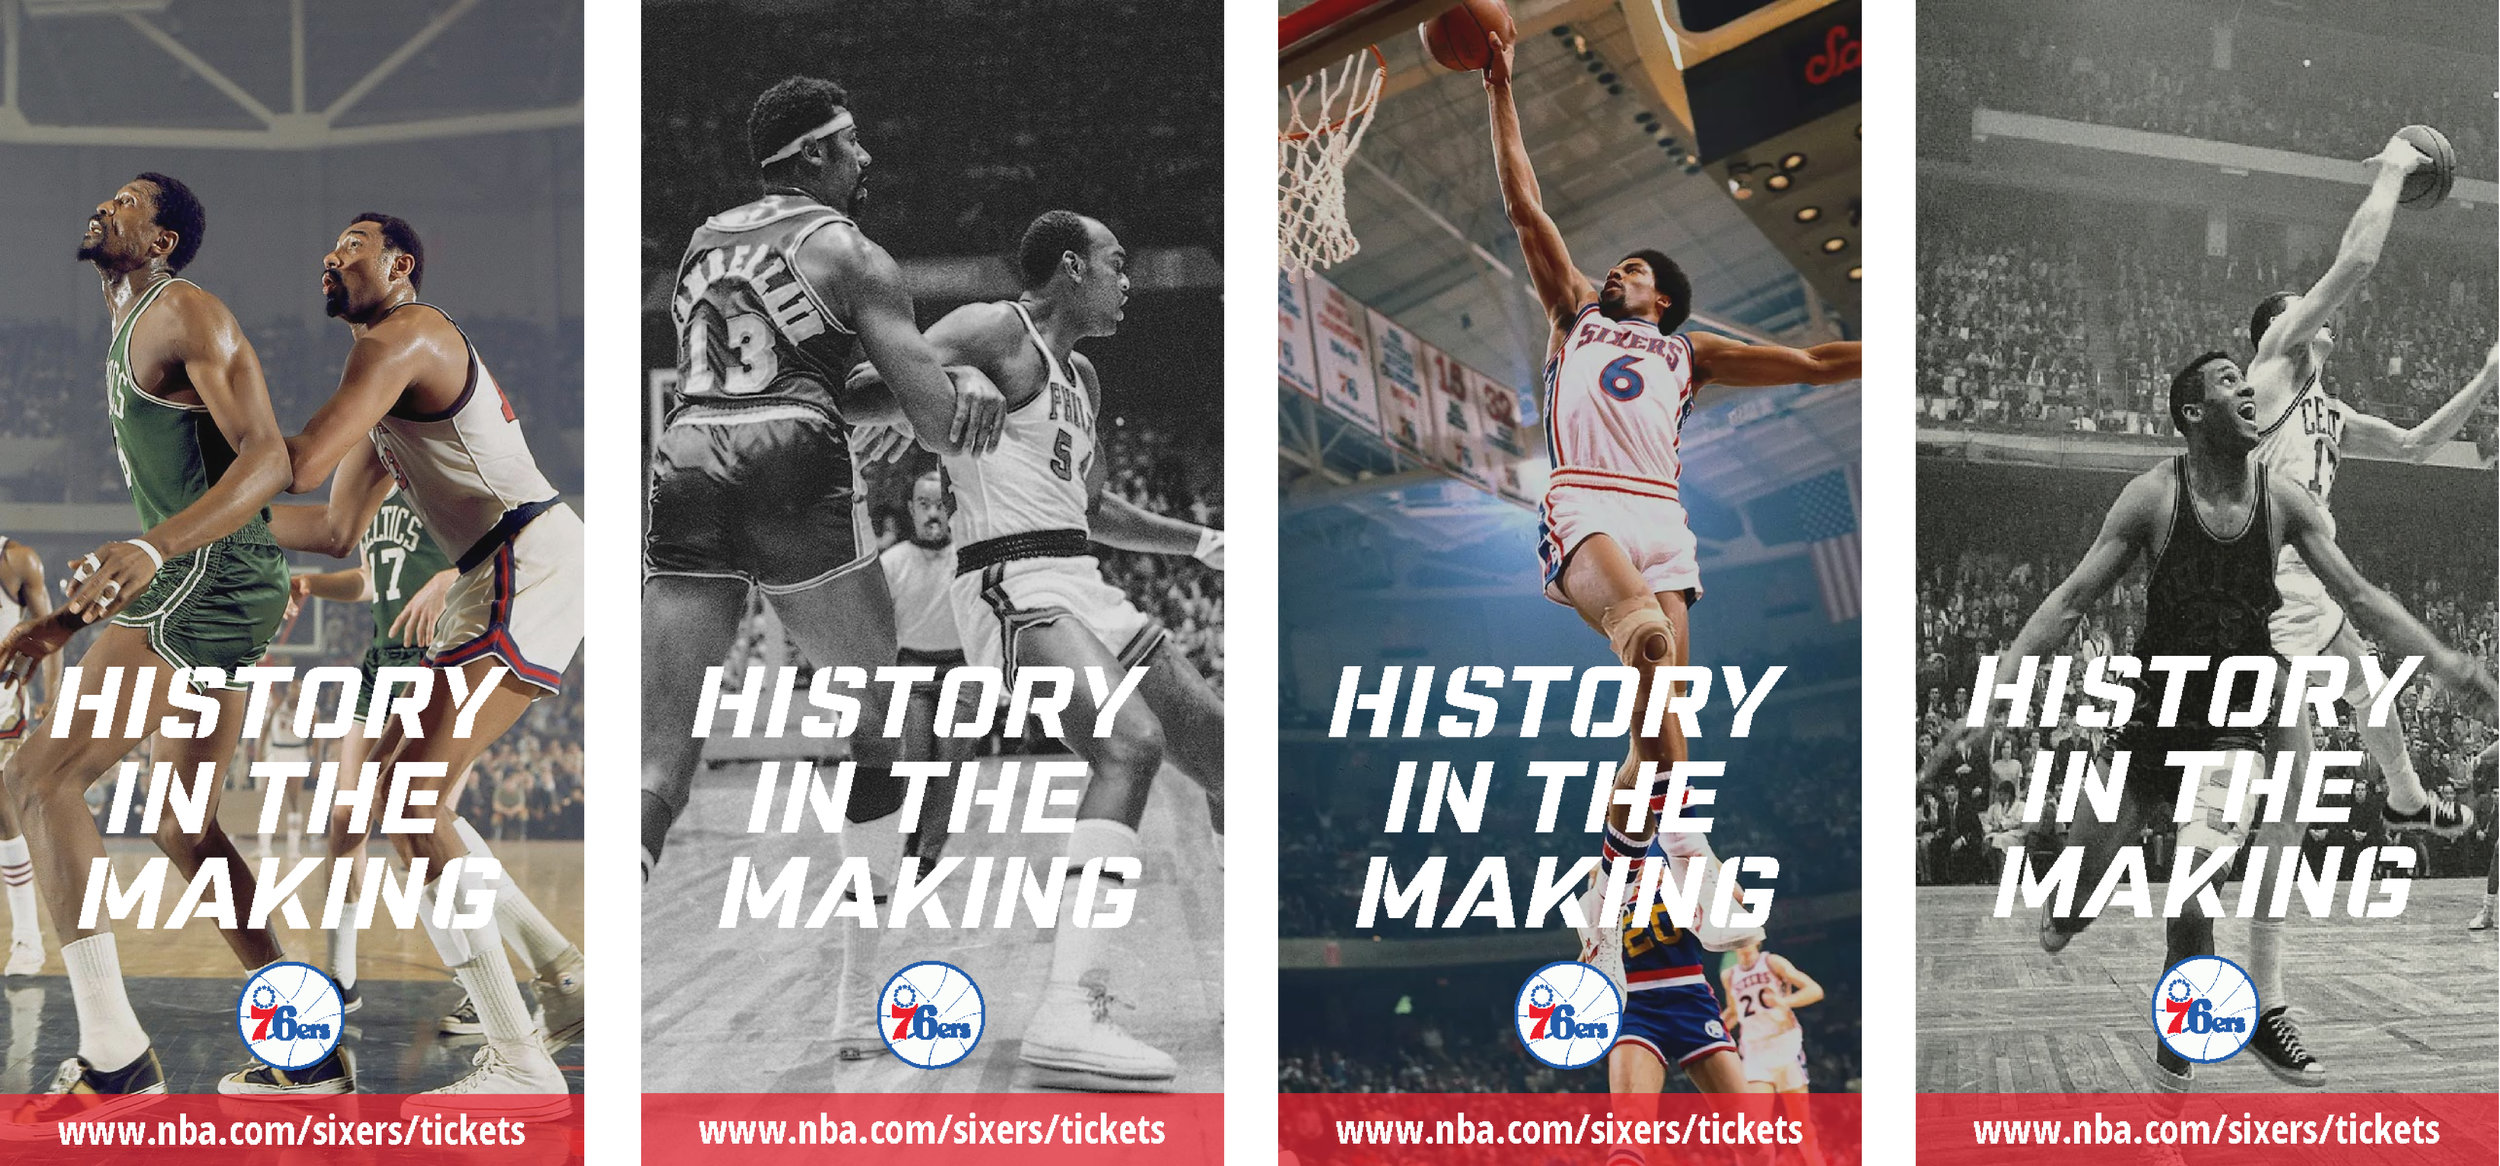 Sixers-Banners2.jpg